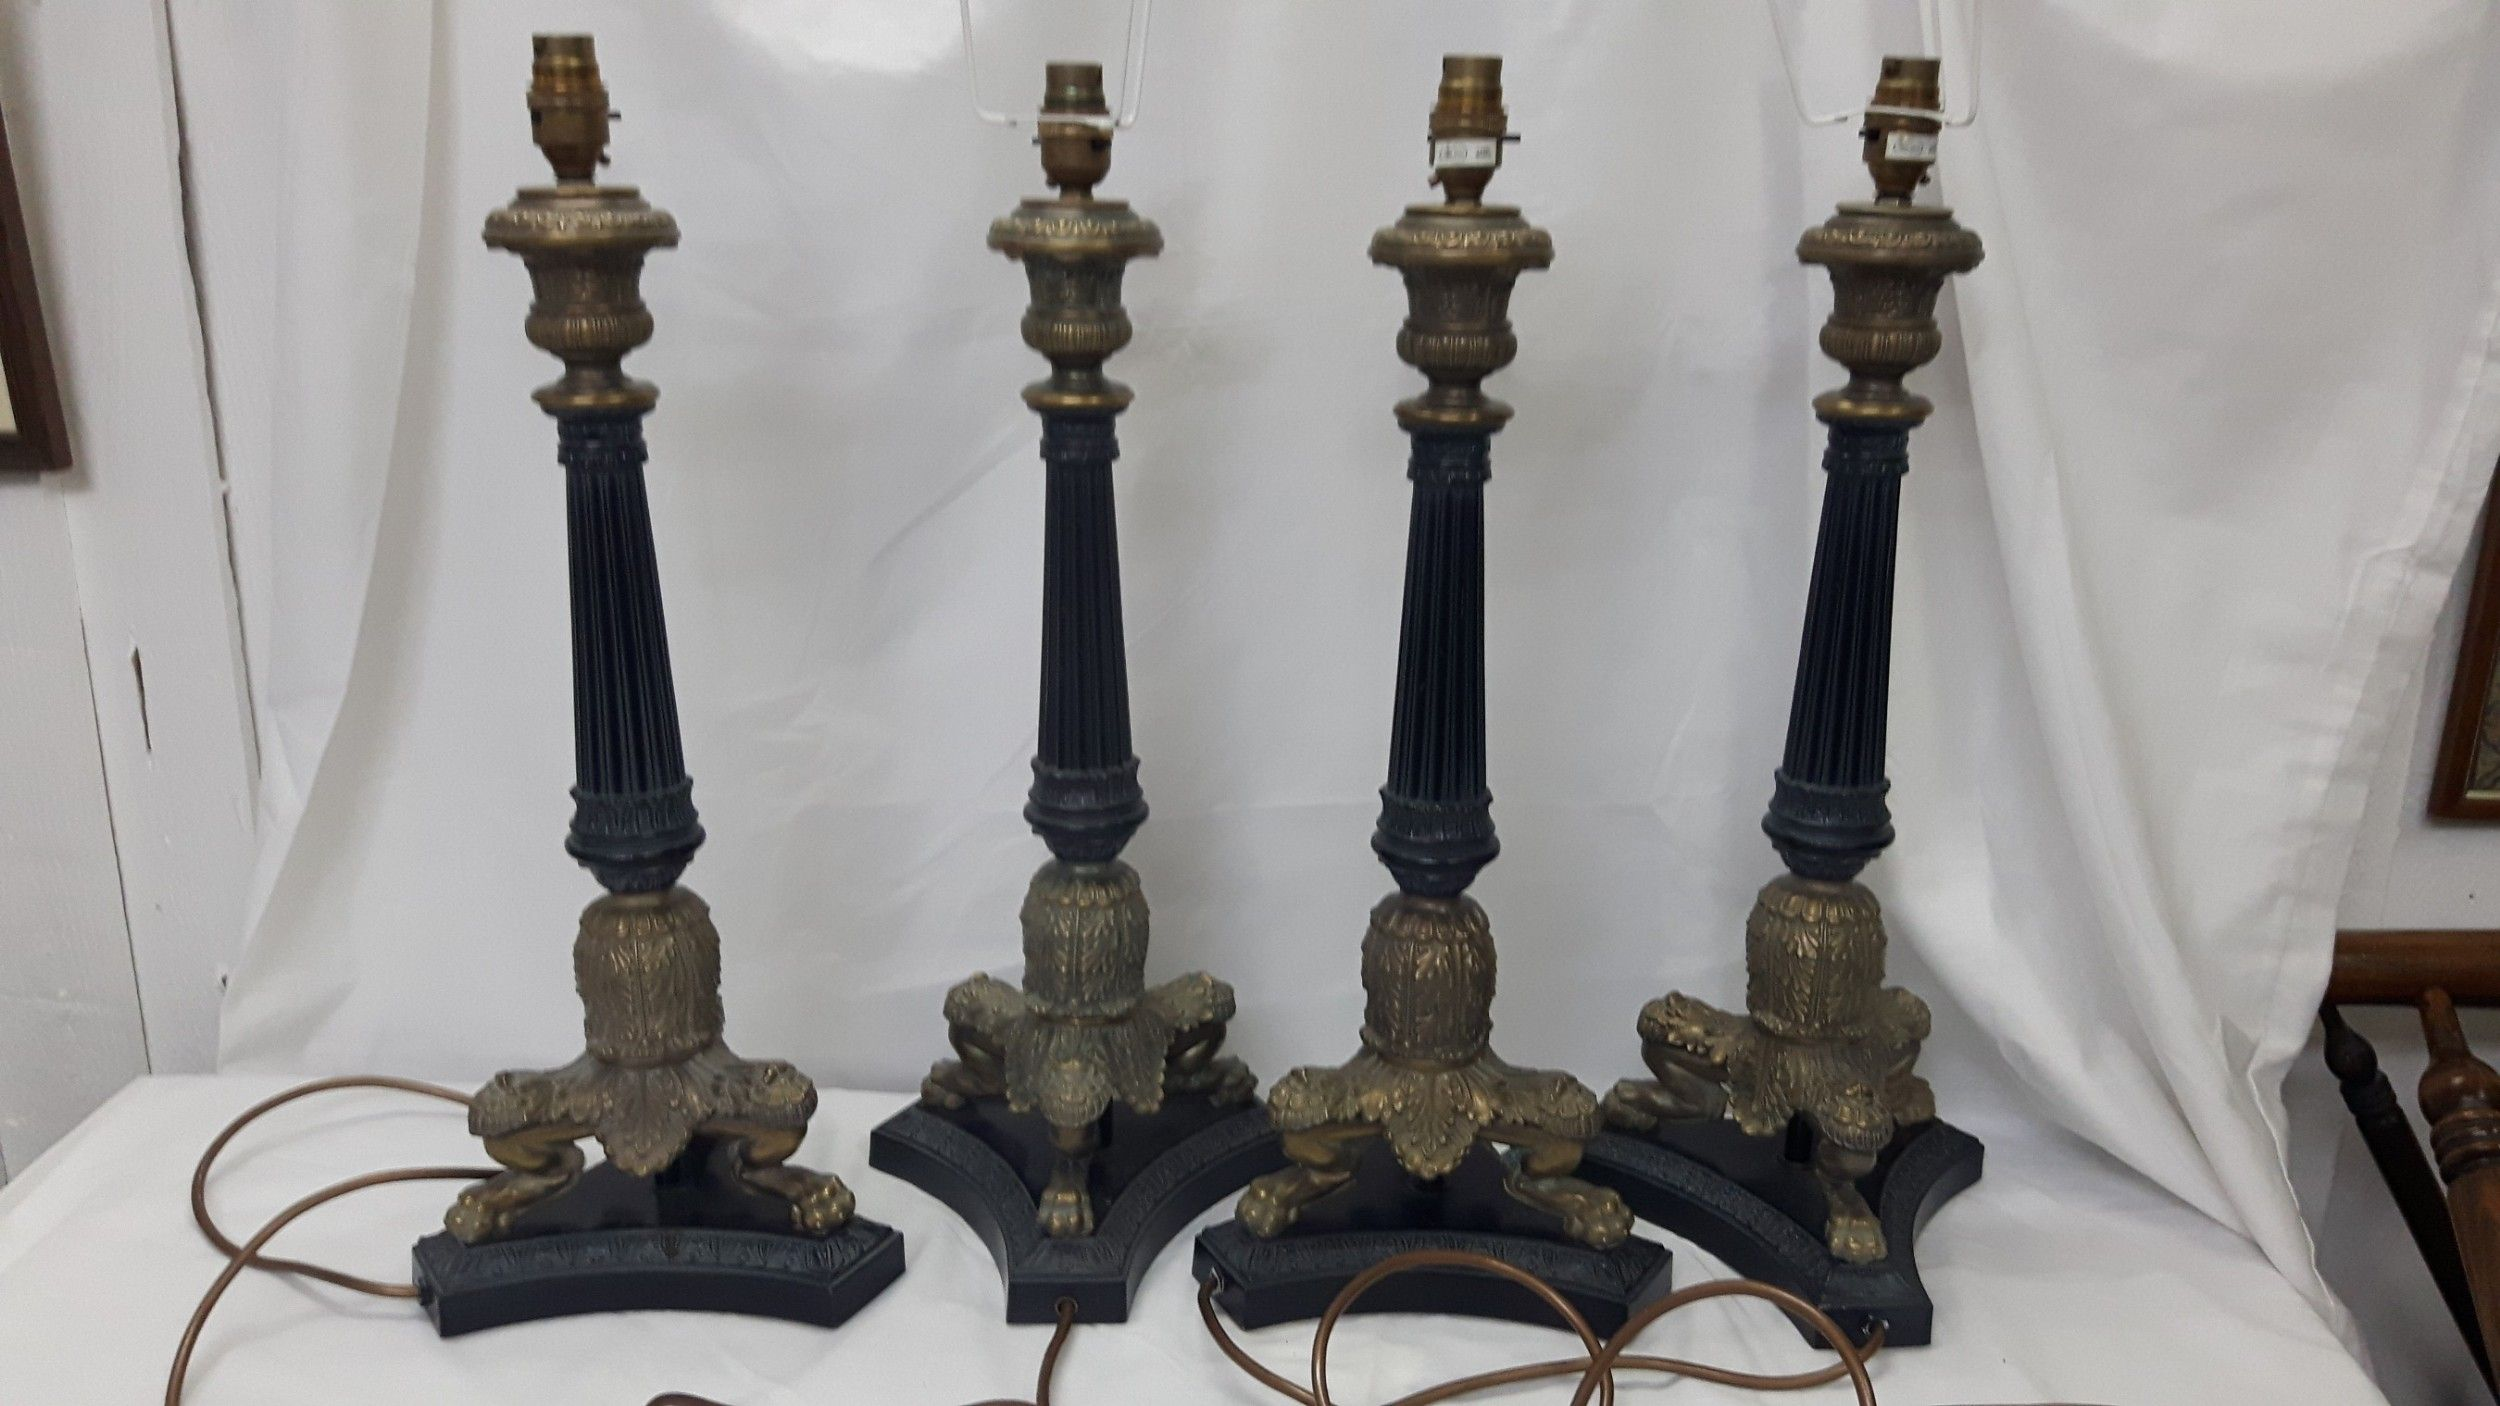 Pin by suegell on lamps pinterest corinthian 4 edwardian corinthian style table lamps in bronze and brass geotapseo Choice Image